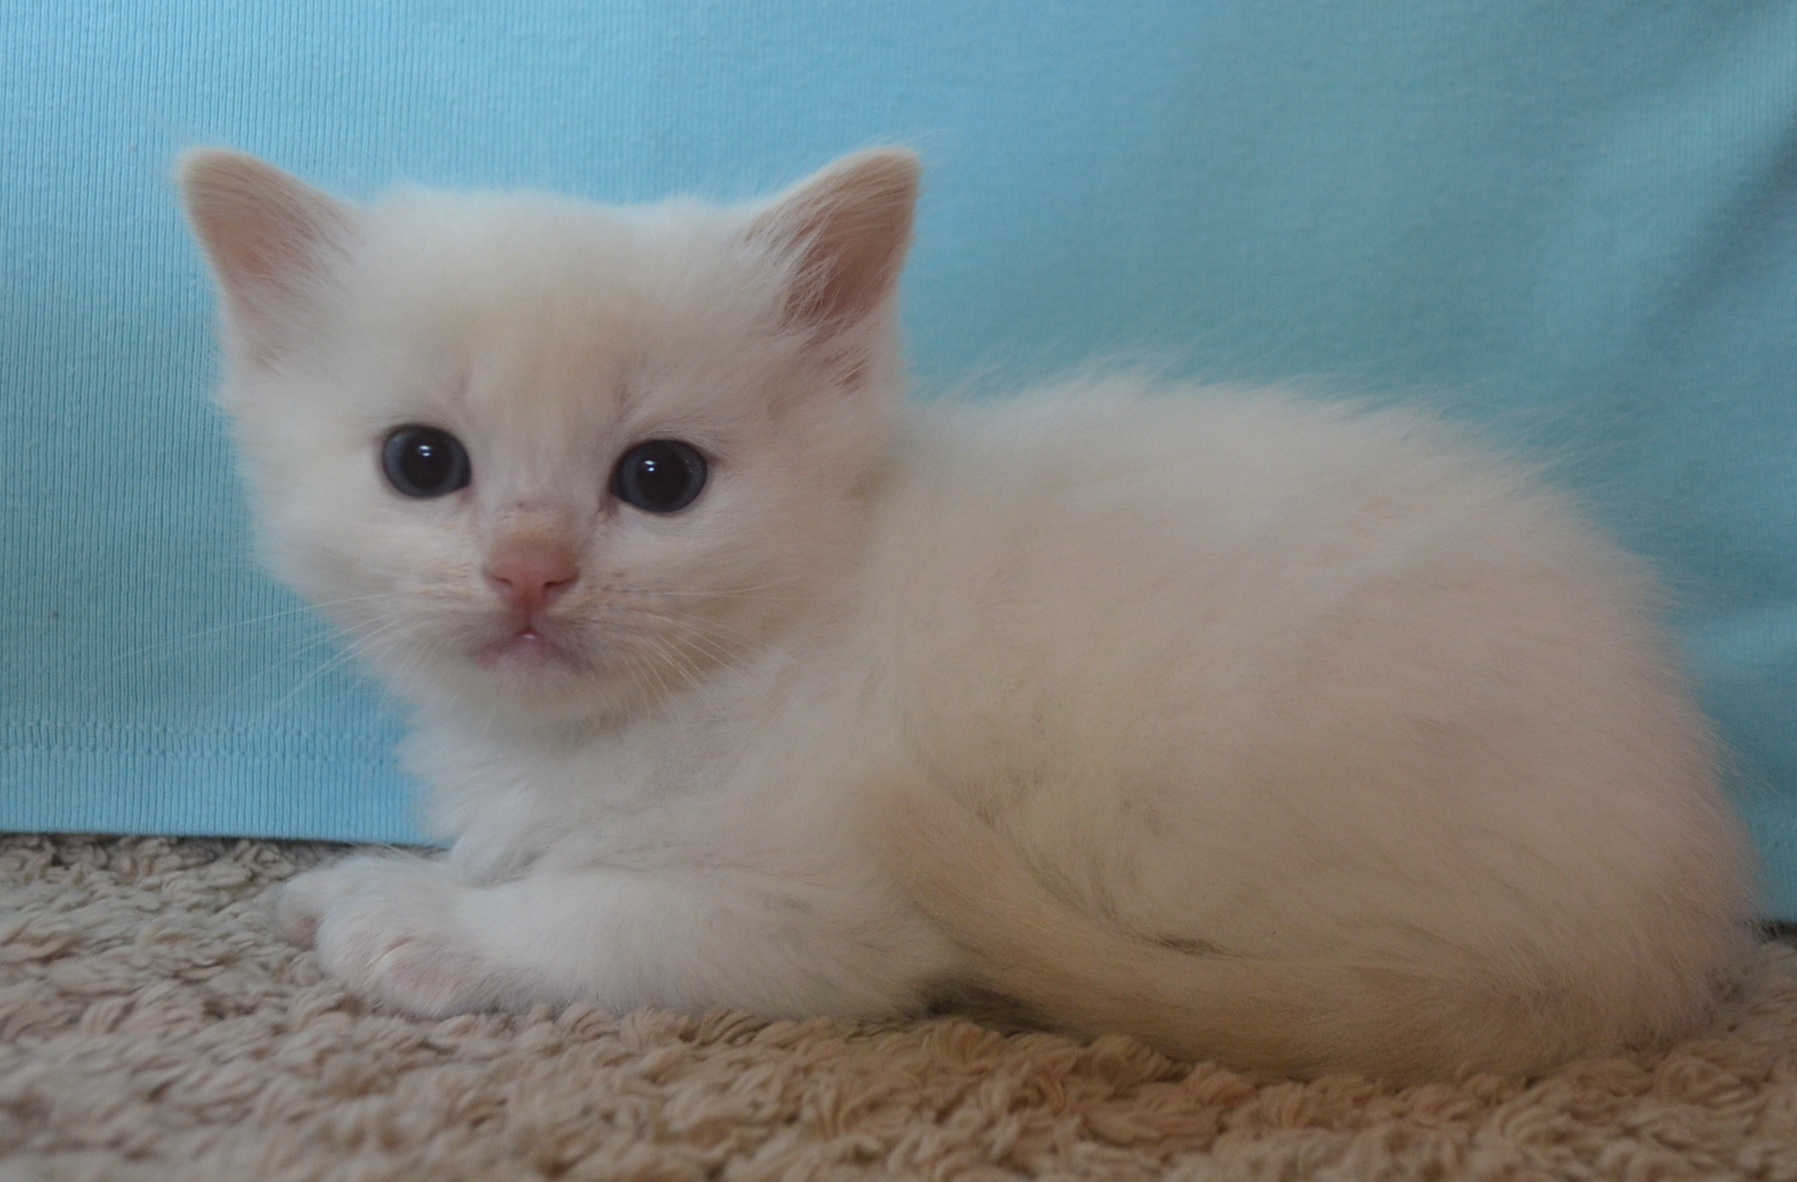 RagdollSEA -  We keep our web site updated about kittens